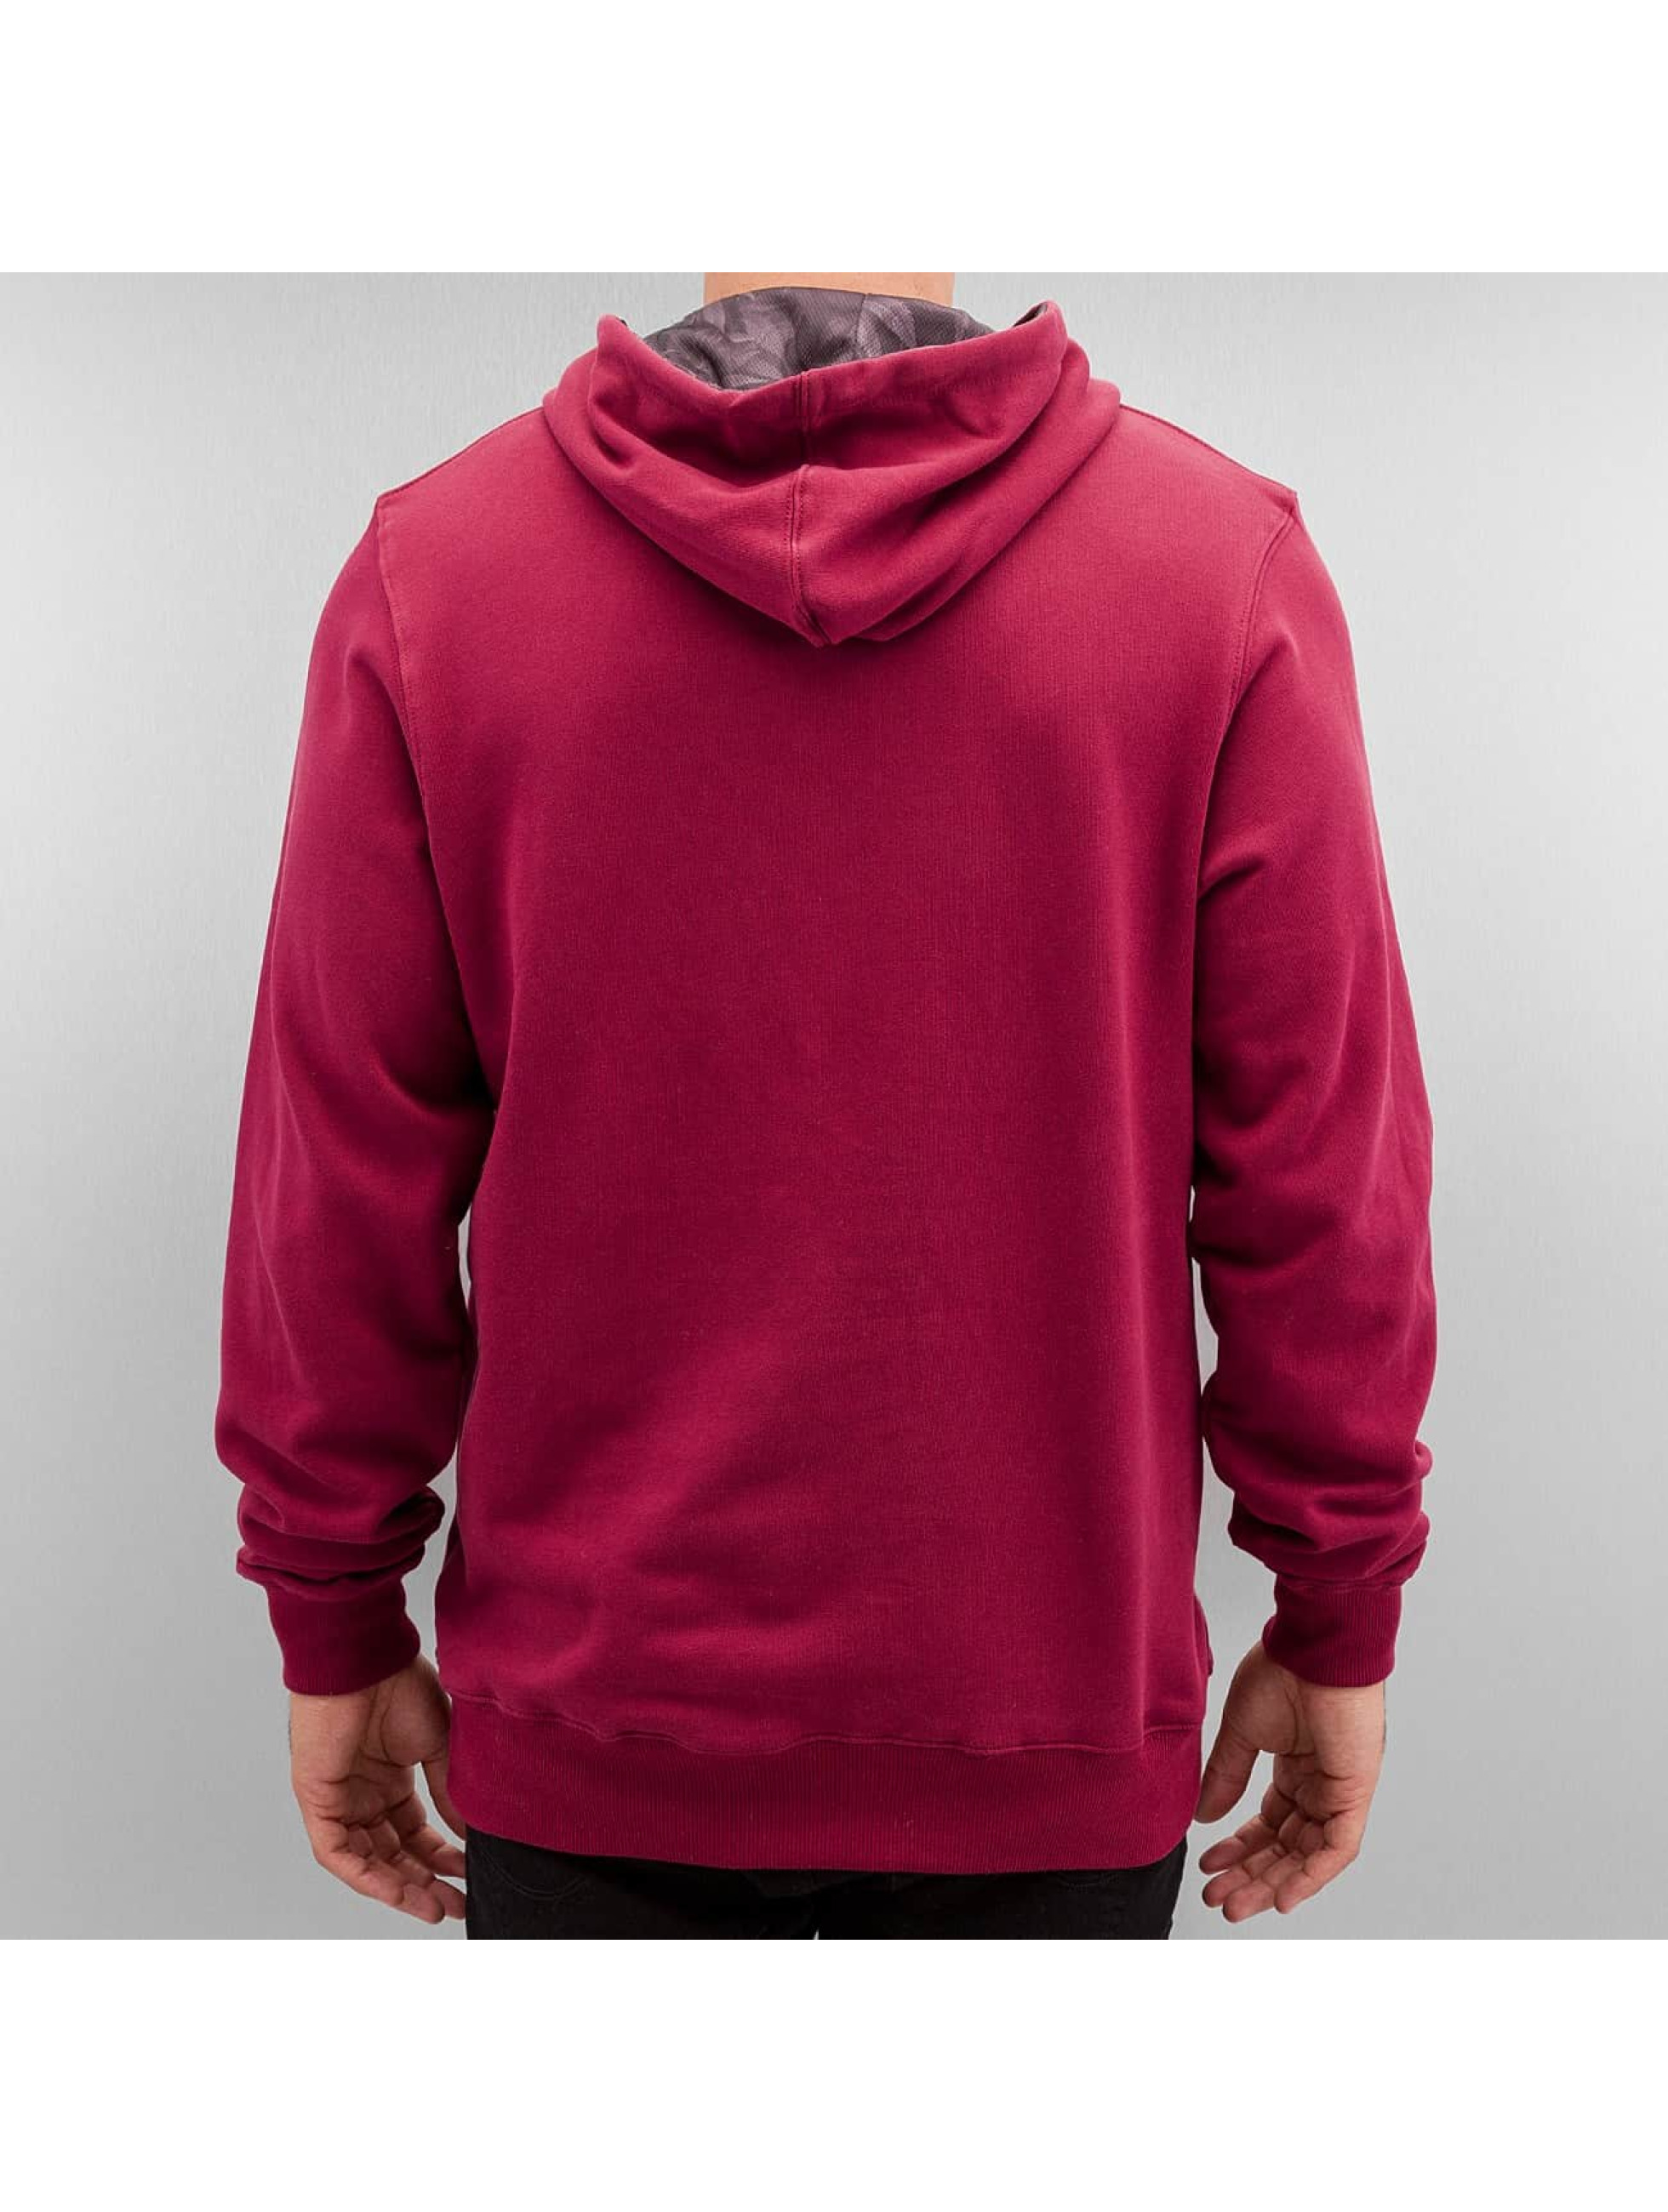 Cayler & Sons Hoody Green Label B&M rot